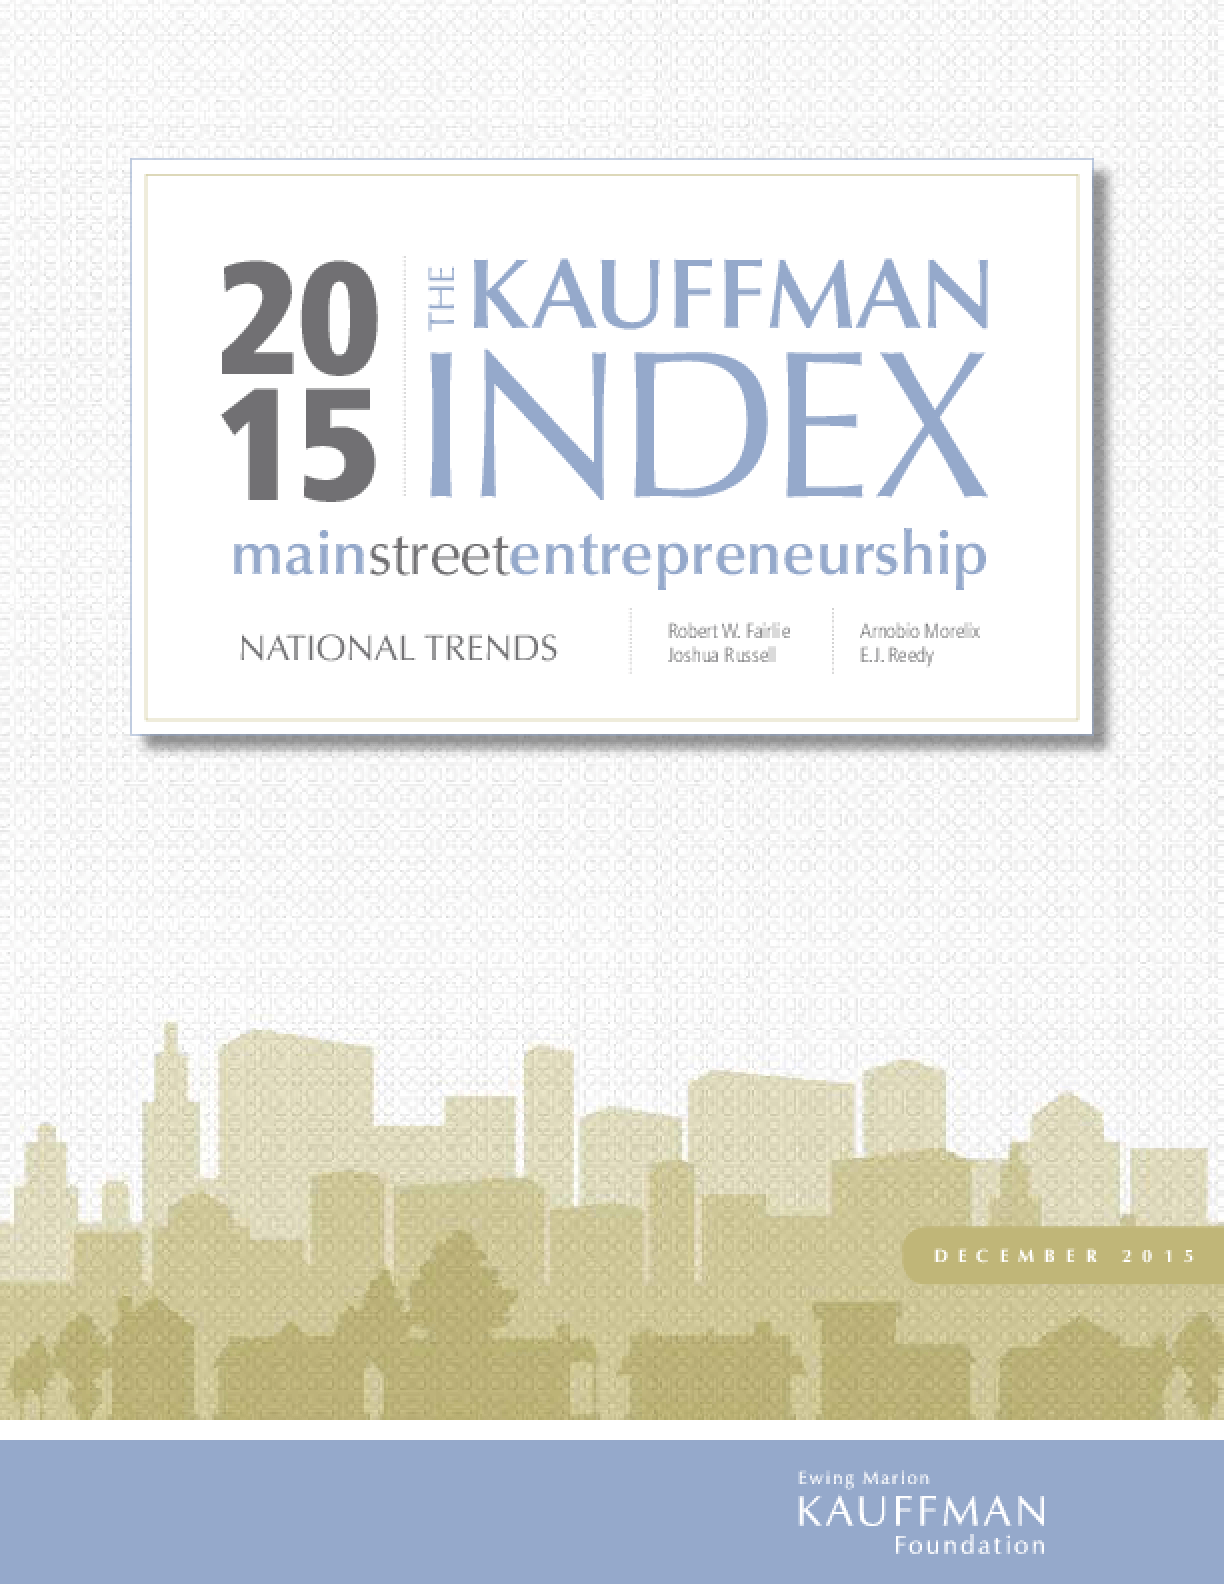 The Kauffman Index: Main Street Entrepreneurship National Trends